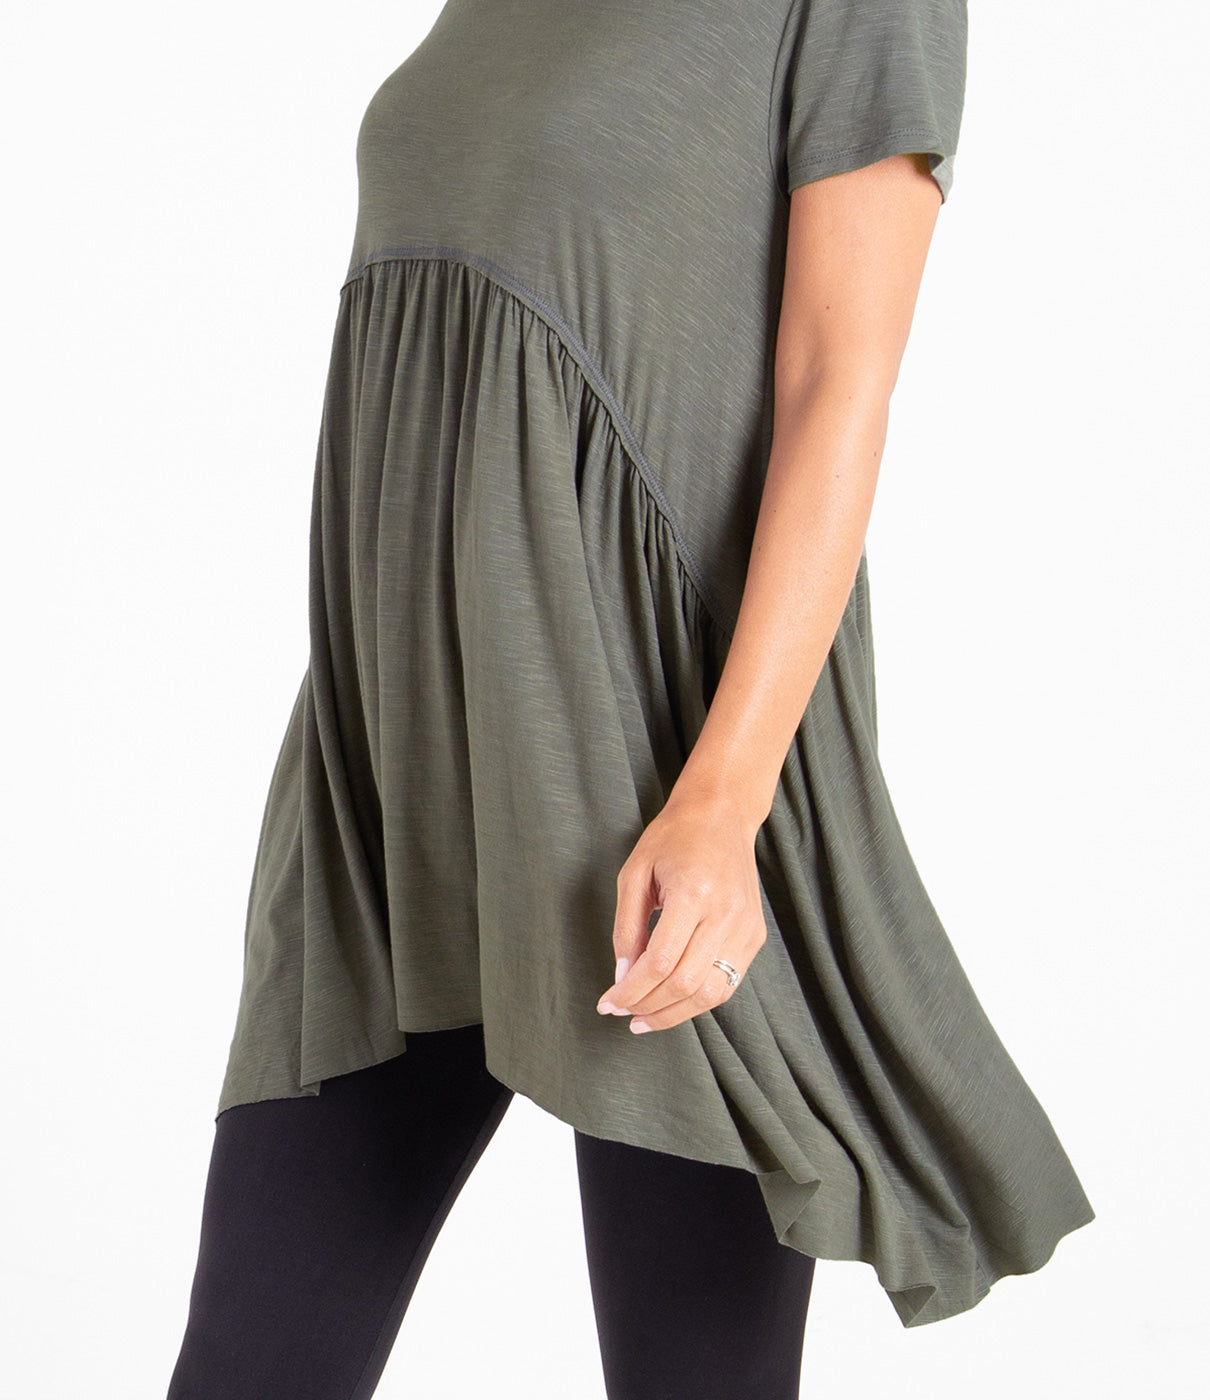 What It's Made OfUltrasoft and stretchy fabric to accommodate your changing belly and body.